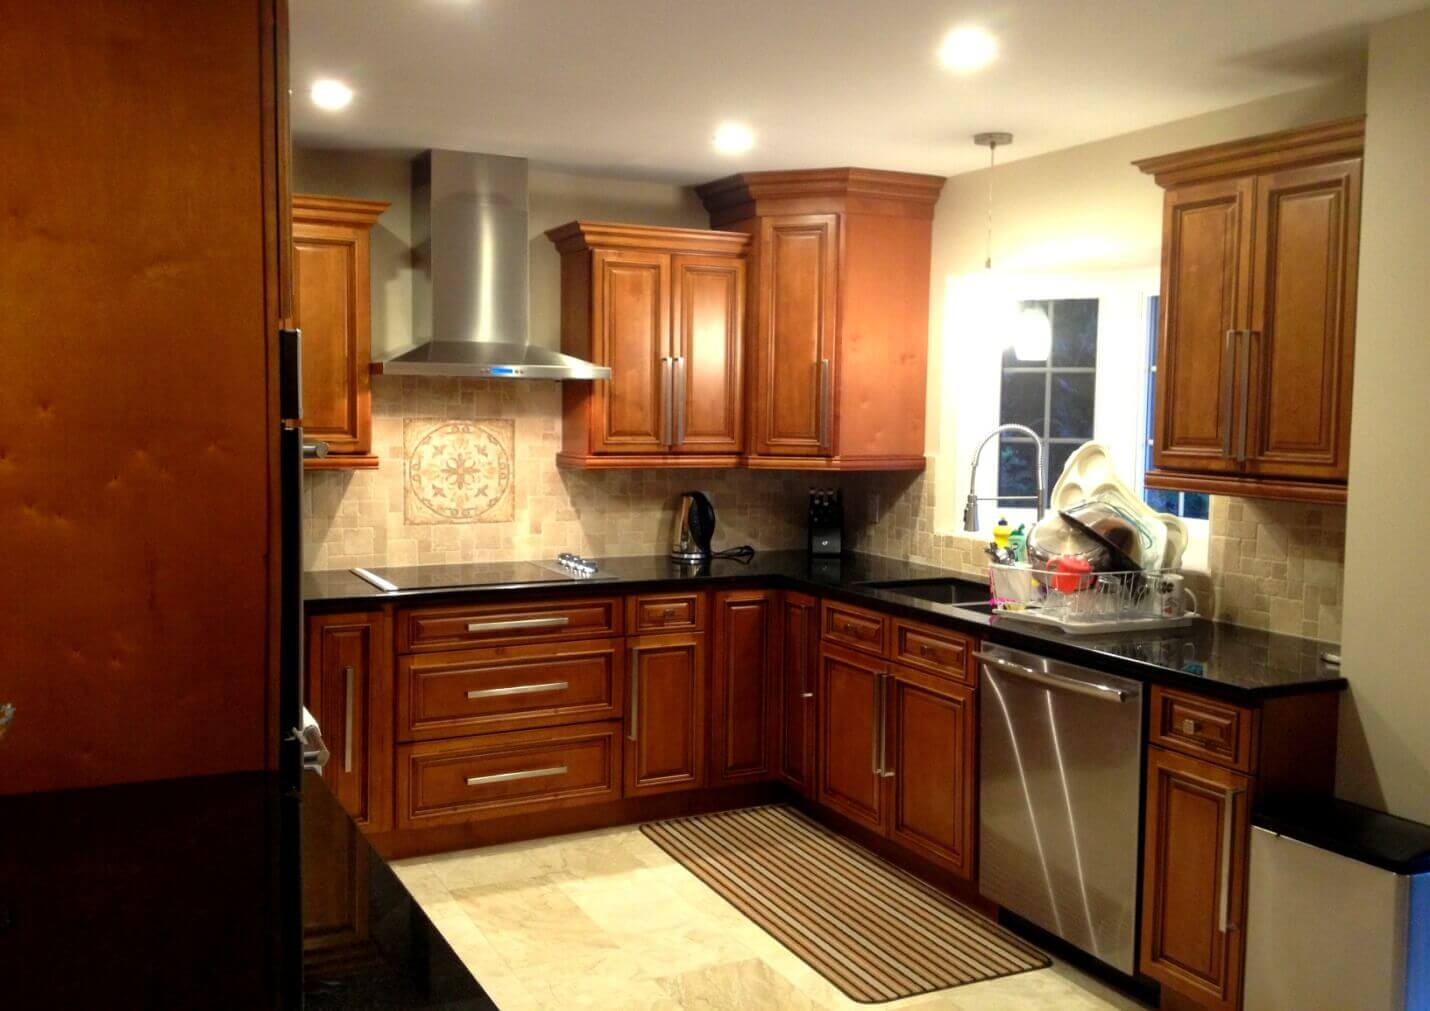 specialties walnut kitchen cabinets walnut kitchen cabinets here are some points that will tell you about the specialty of walnut kitchen cabinets